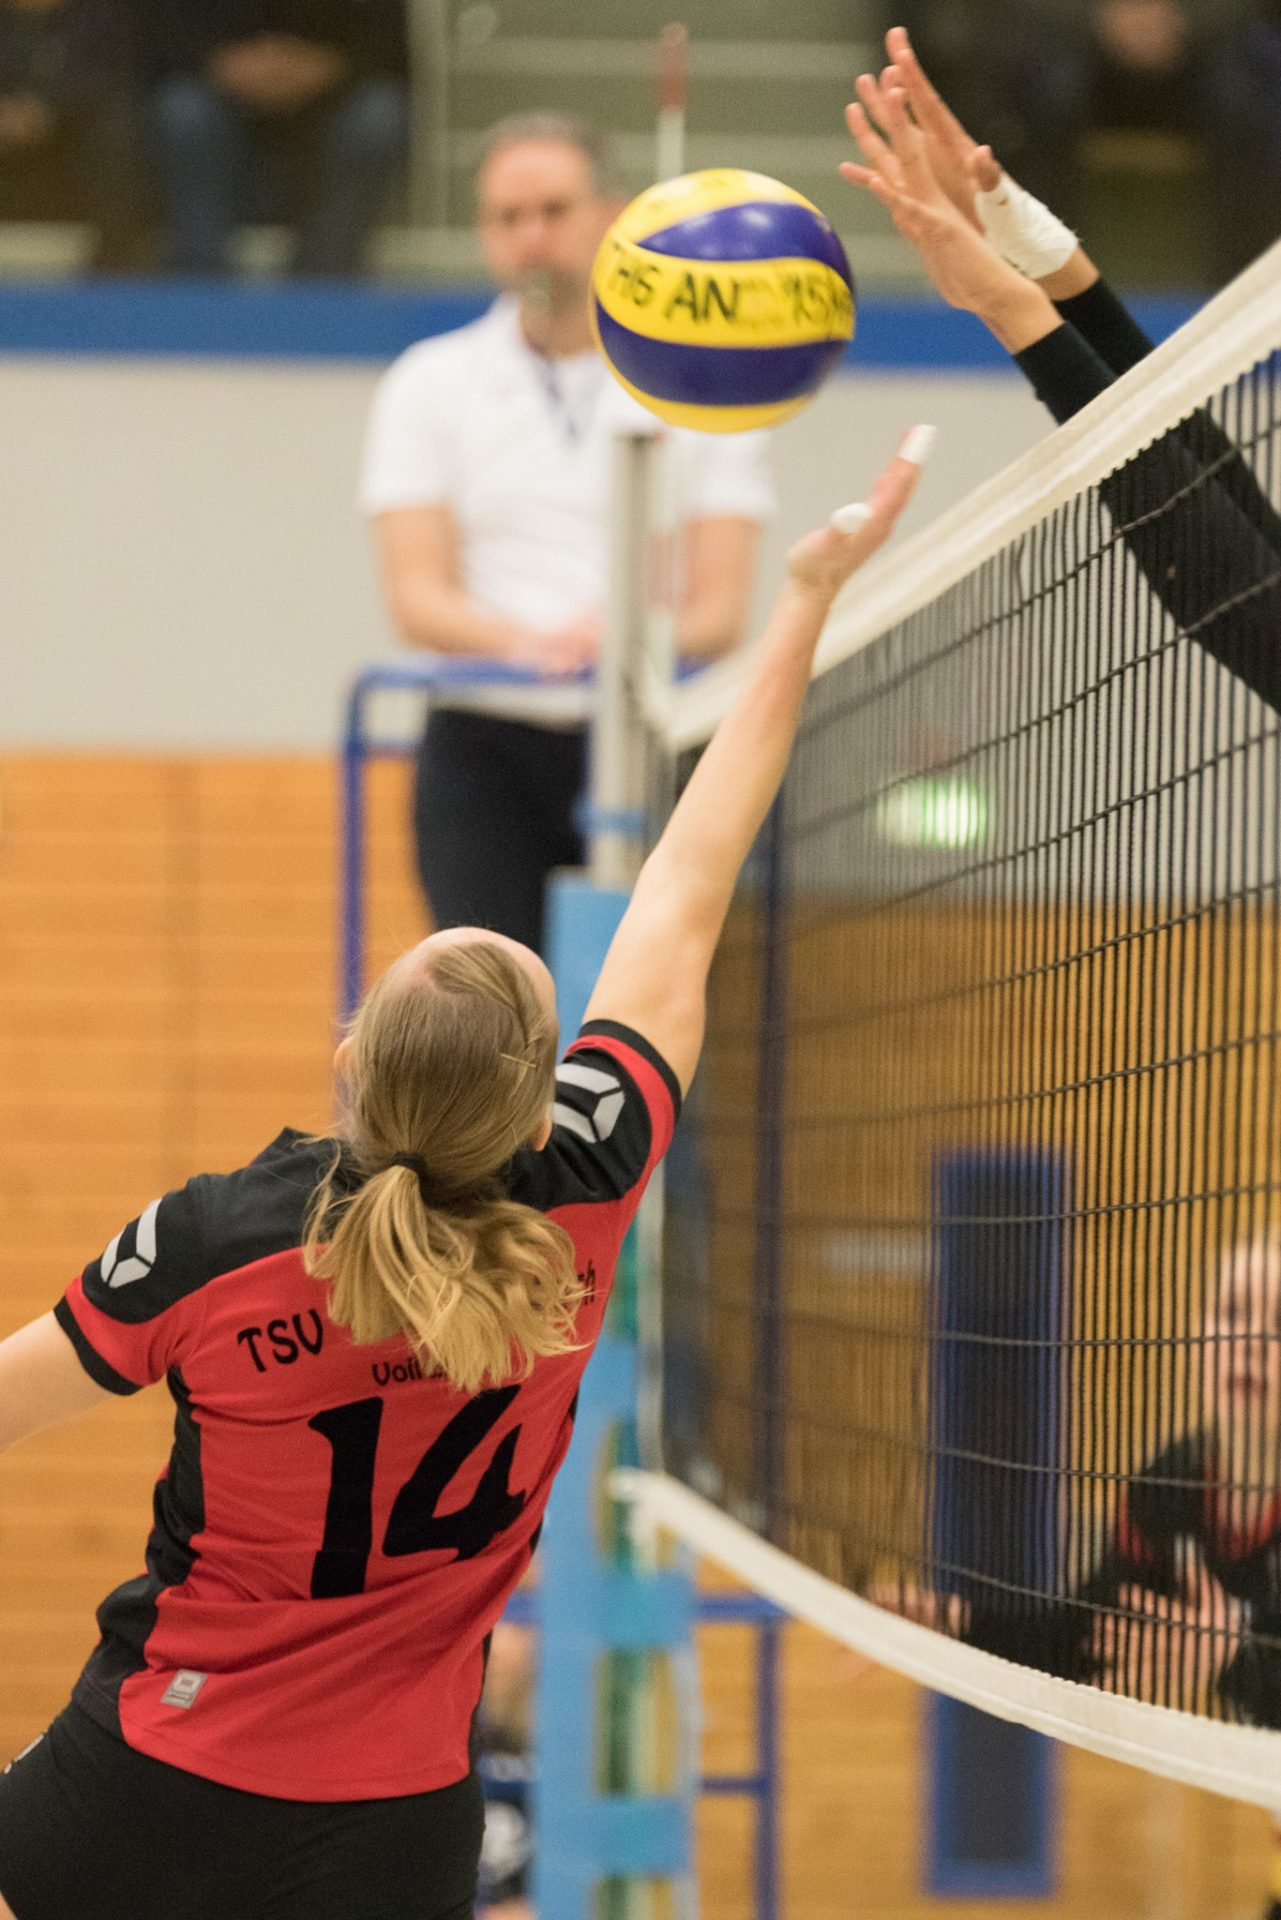 Sportfotografie - Volleyball